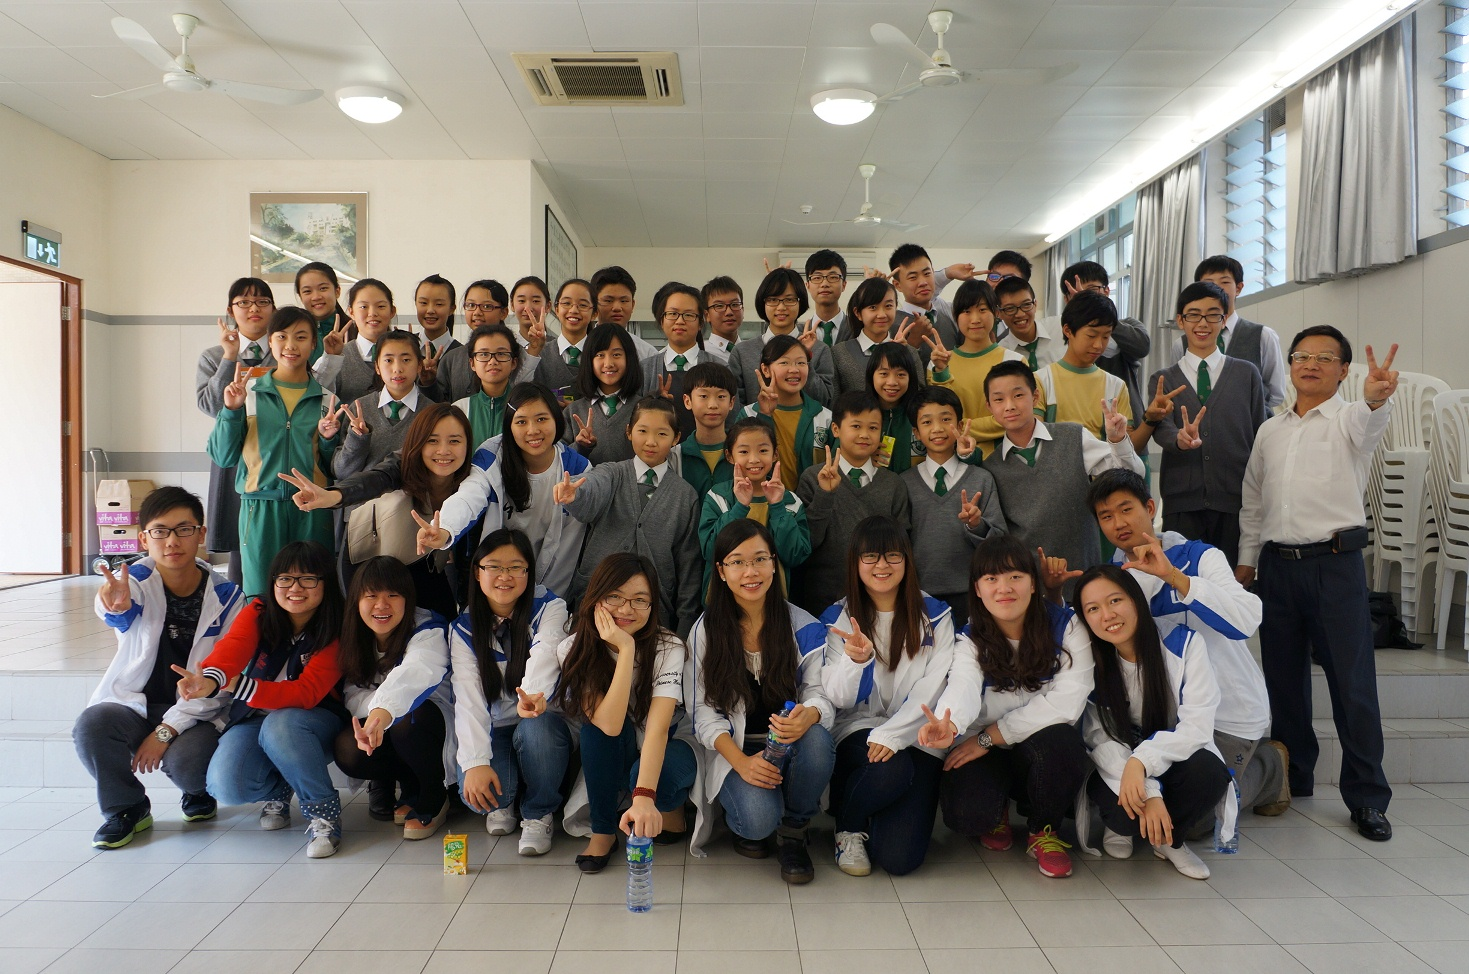 UM Chinese Music Group holds workshops at local middle schools